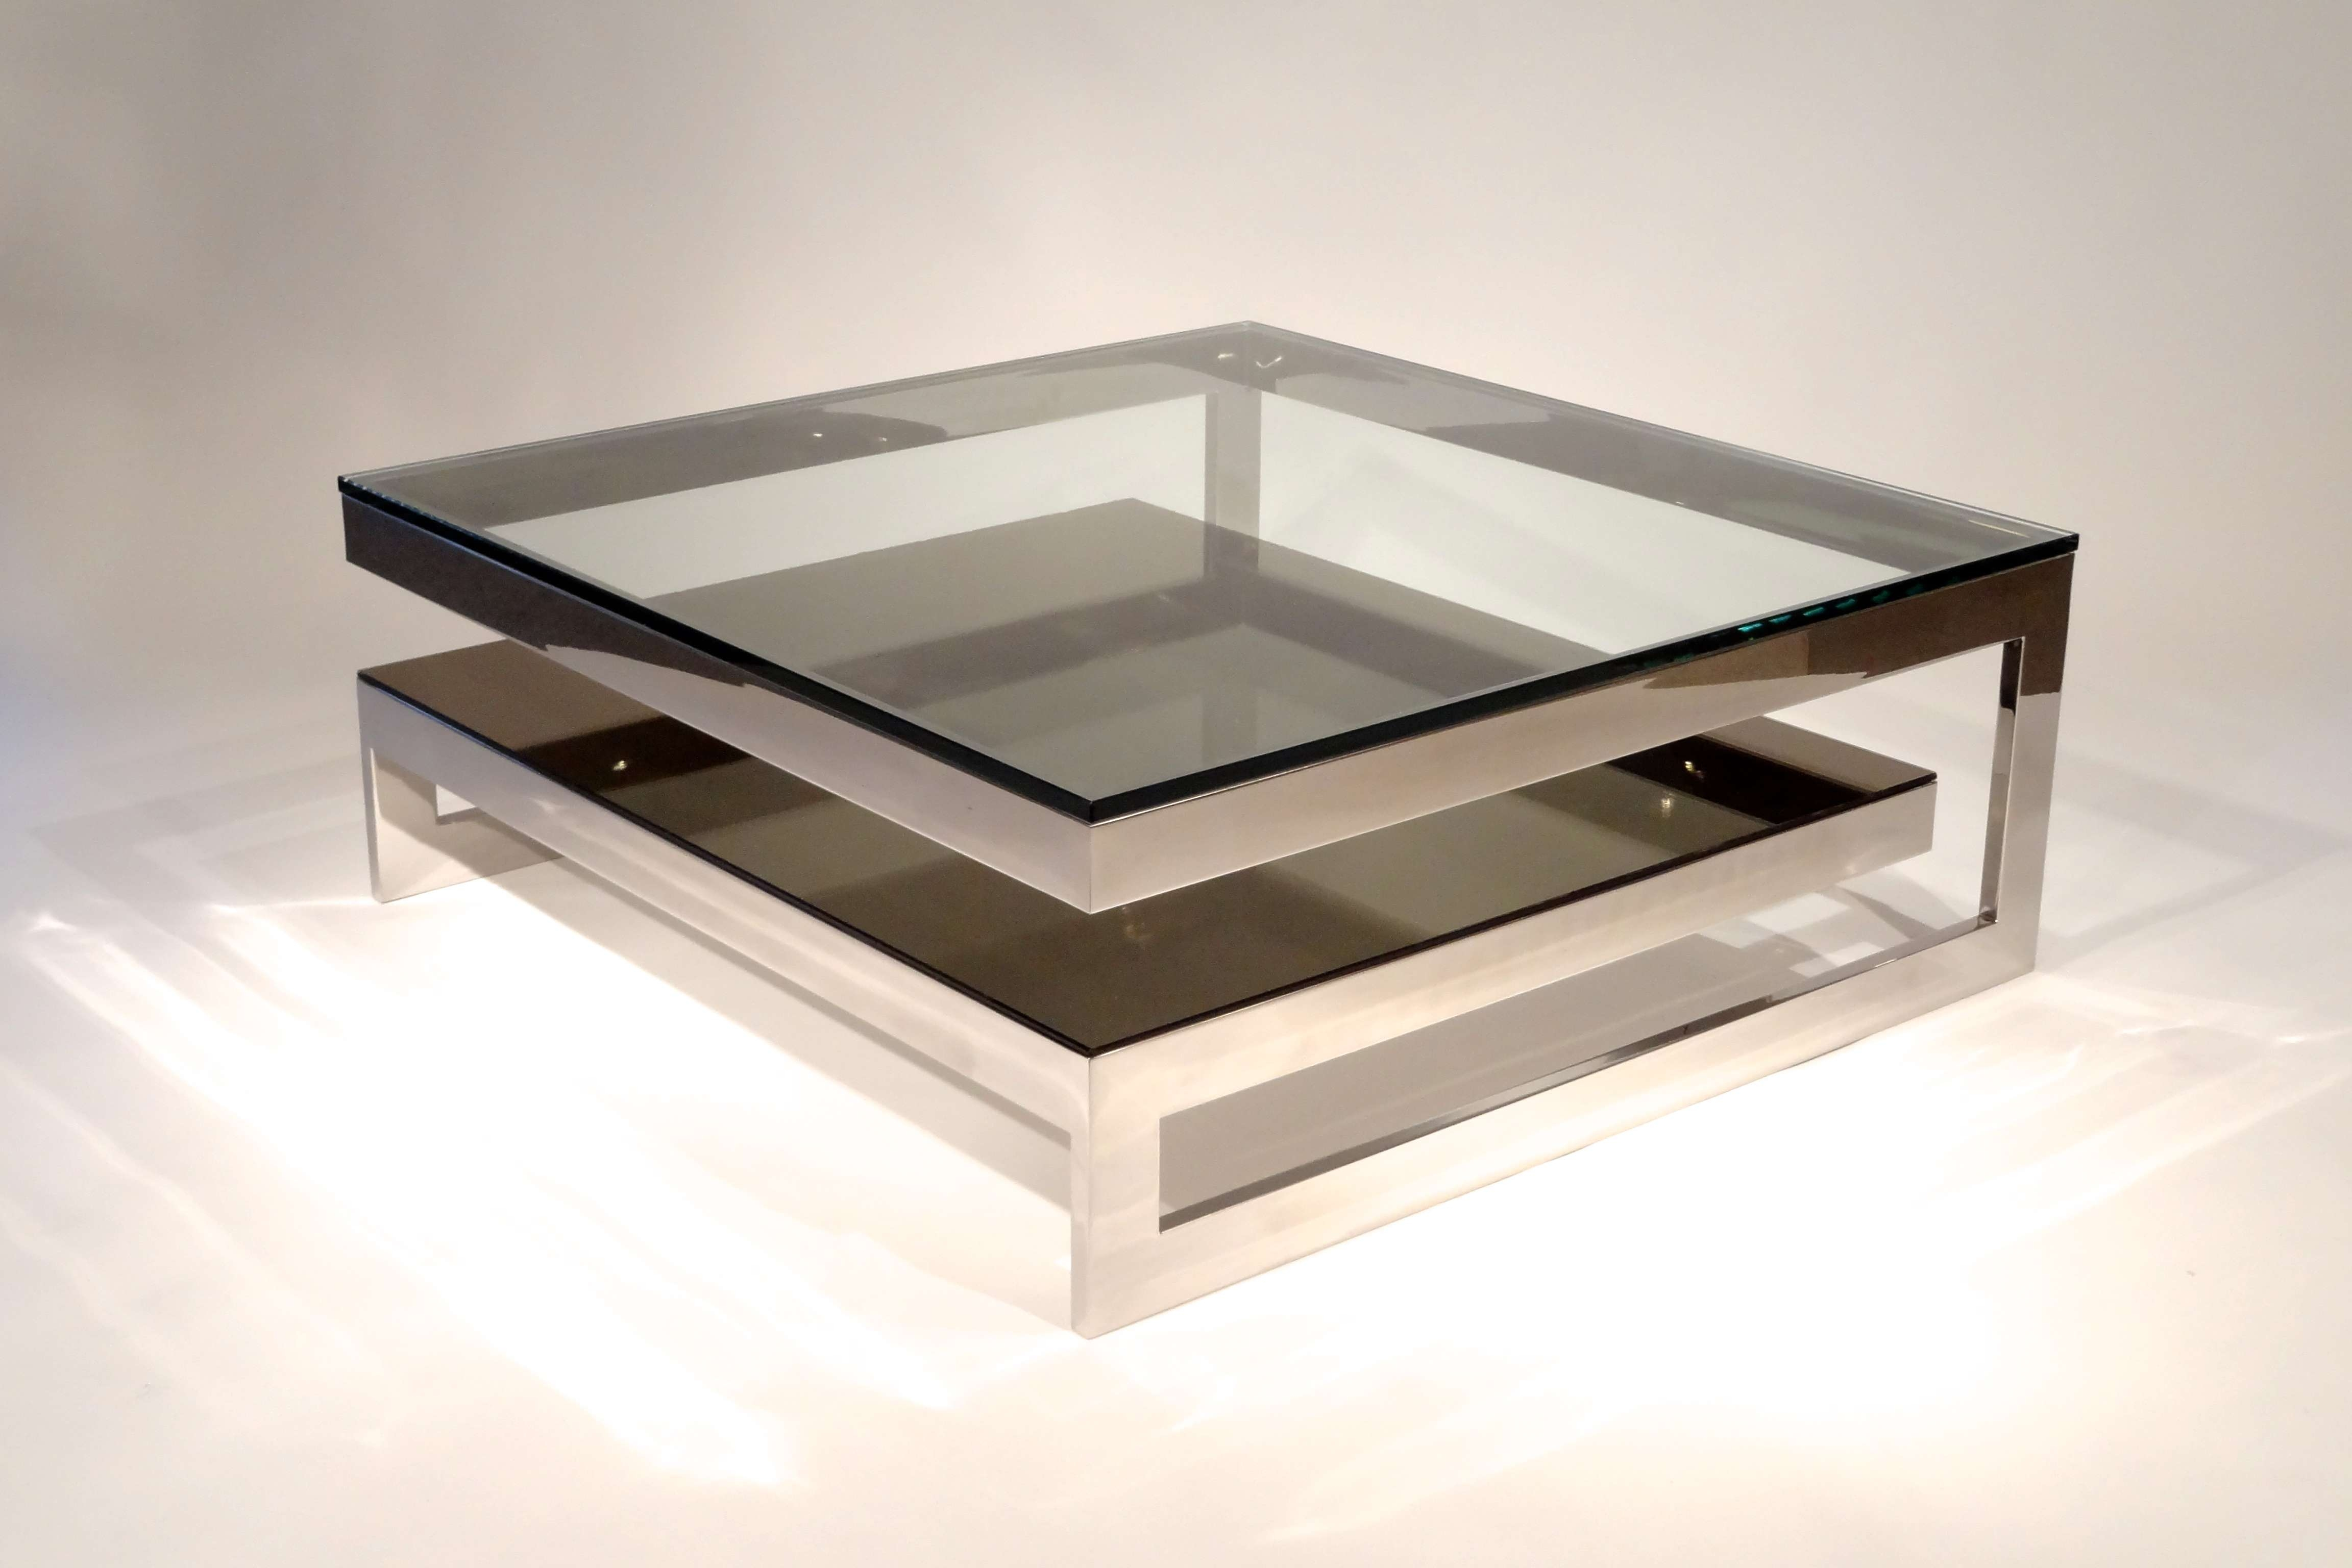 Coffee Table : Marvelous Iron Coffee Table Square Wood Coffee Inside Popular Glass Square Coffee Tables (View 6 of 20)